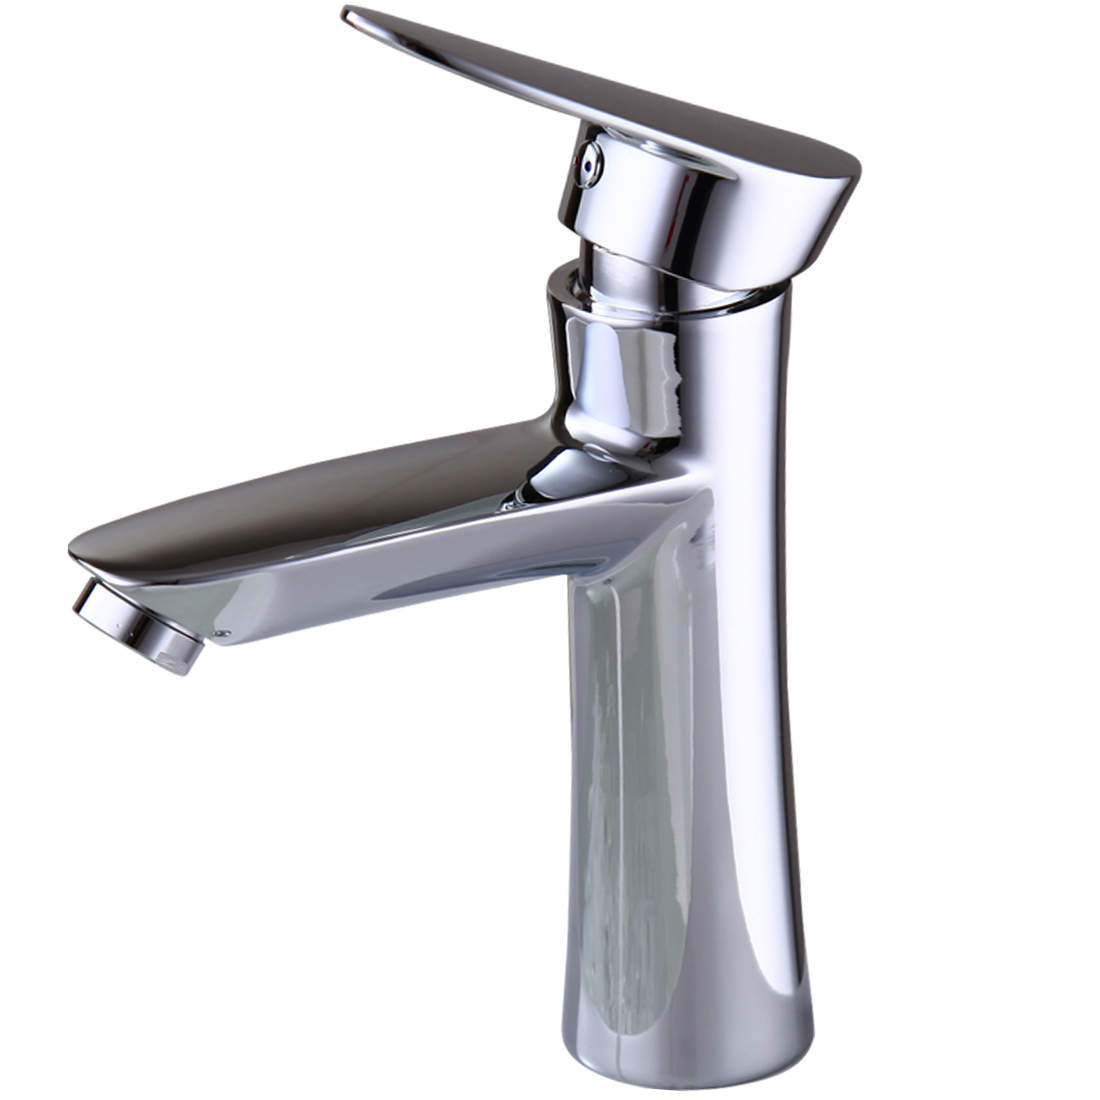 Bathroom Faucet Widespread Sink Mixer Tap Oil Rubbed Bronze Modern Single Handle Ebay